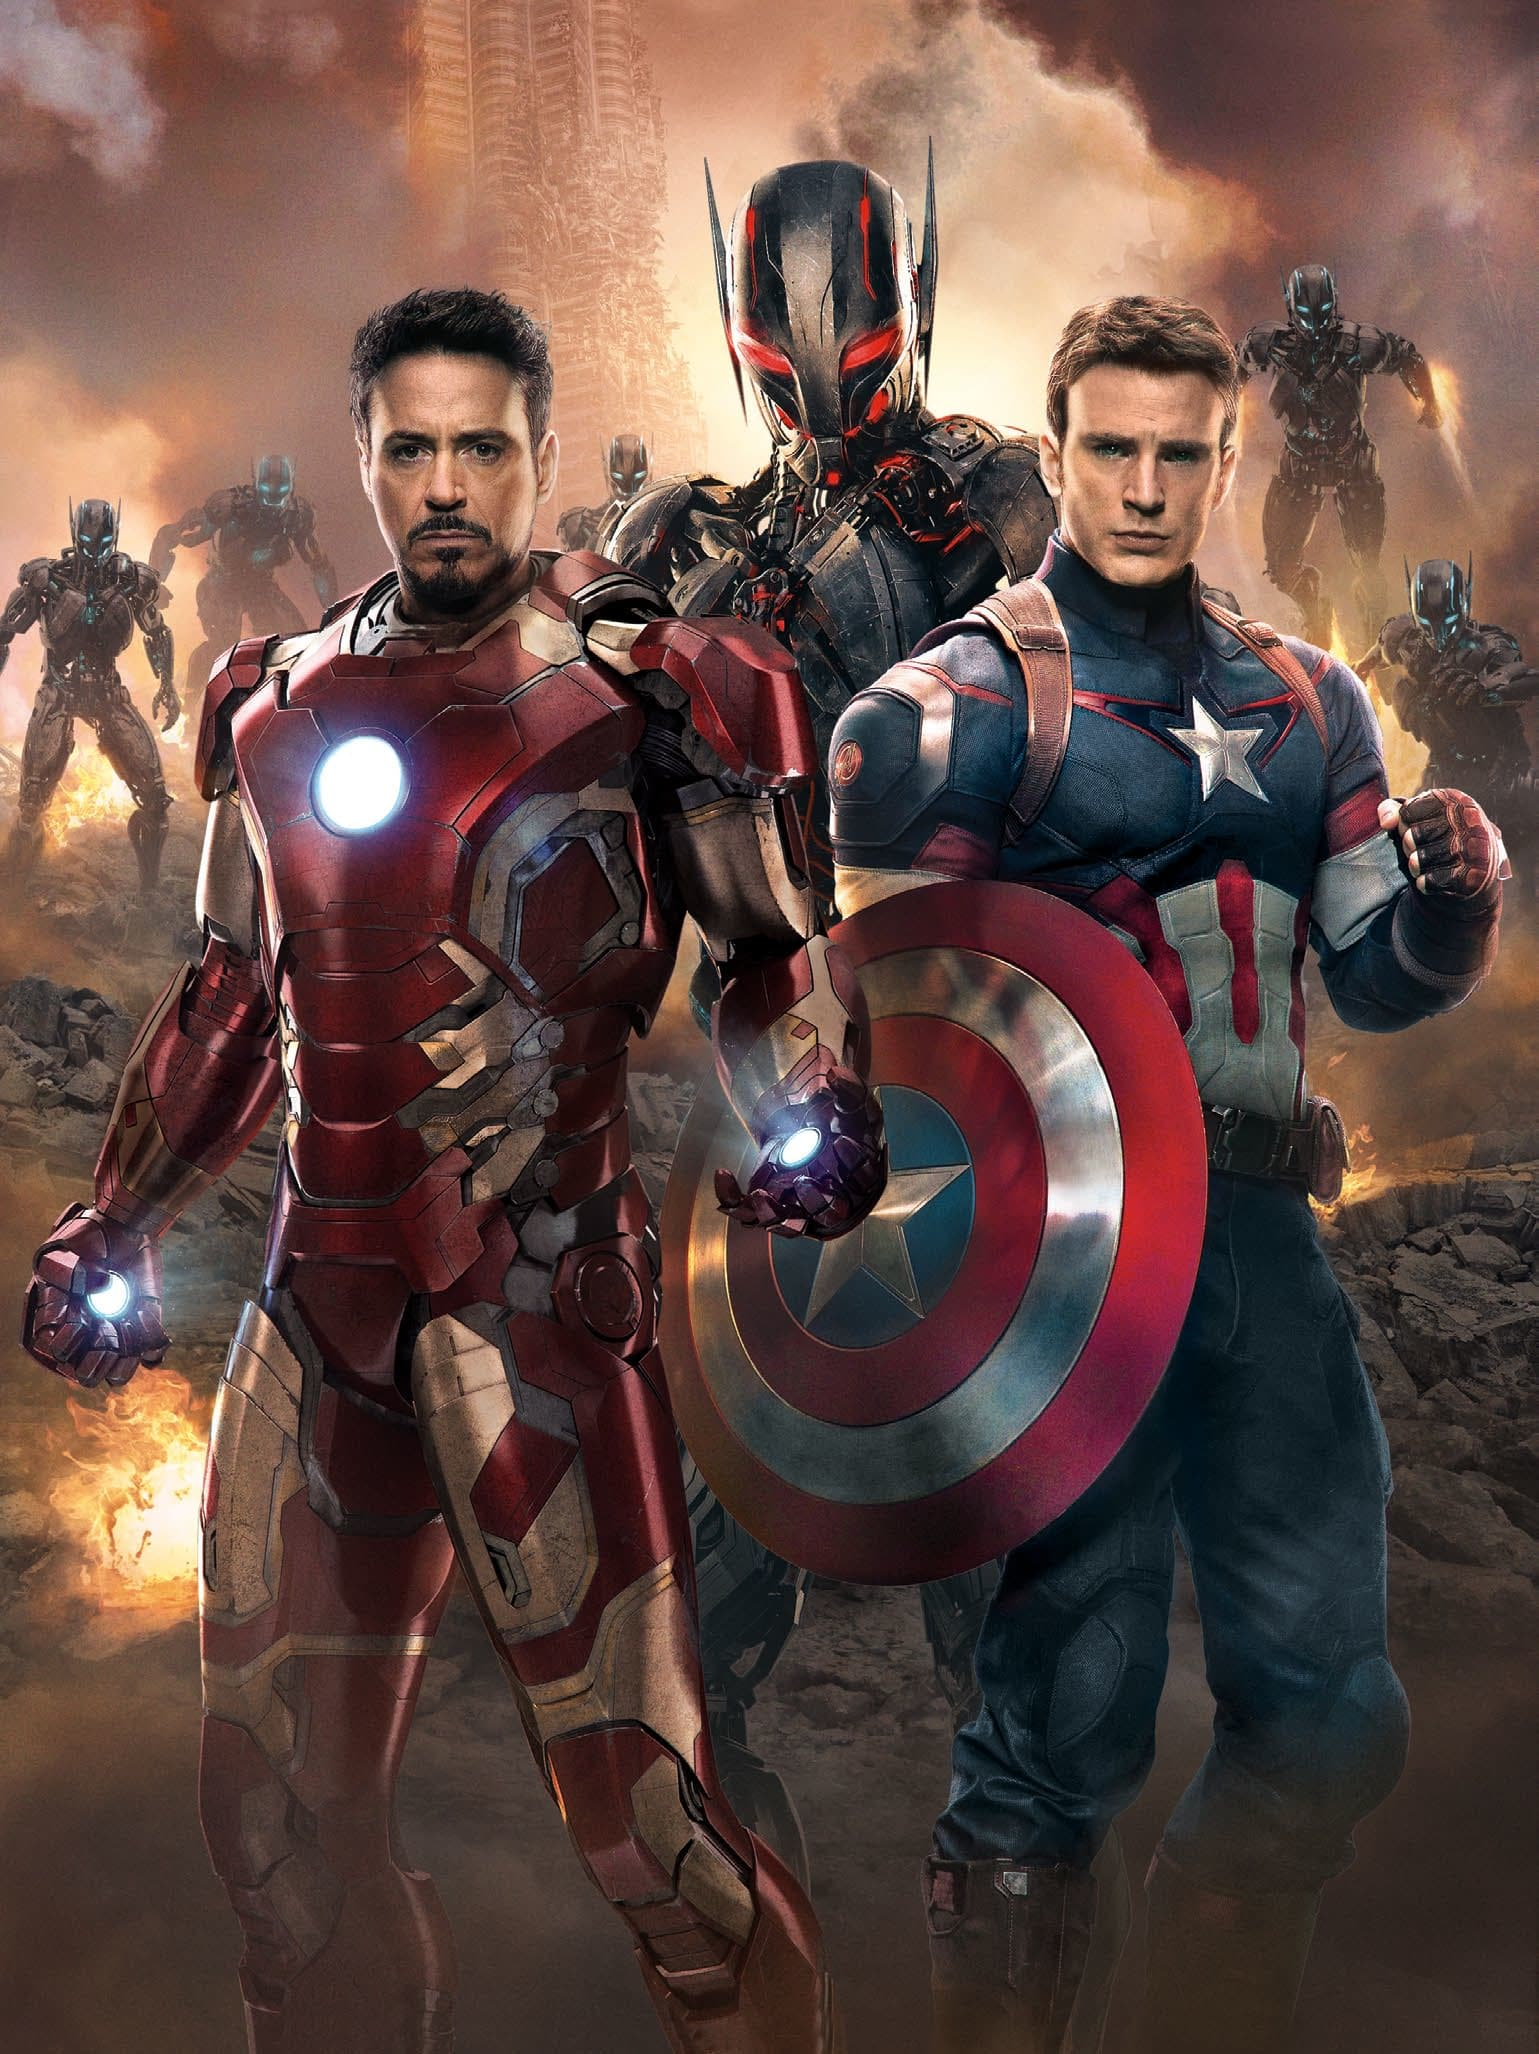 Avengers Age Of Ultron Teaser Trailer Sets Studio Record With Whopping 35m Views In First Day The Washington Post